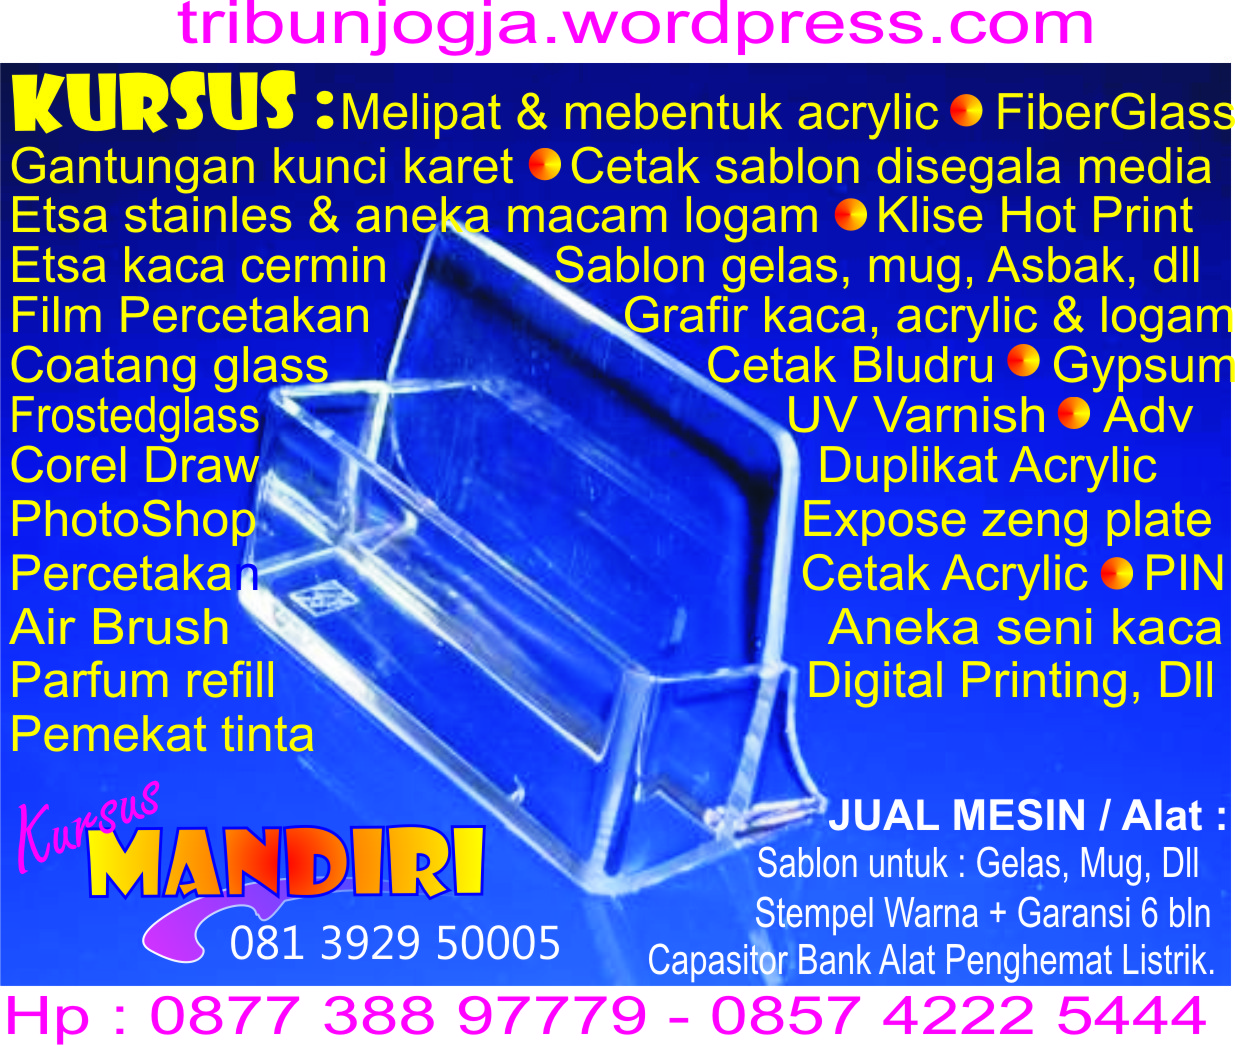 stone cold steel chair gif for baby to sit up kami spesial website pusat kursus cetak offset jilid